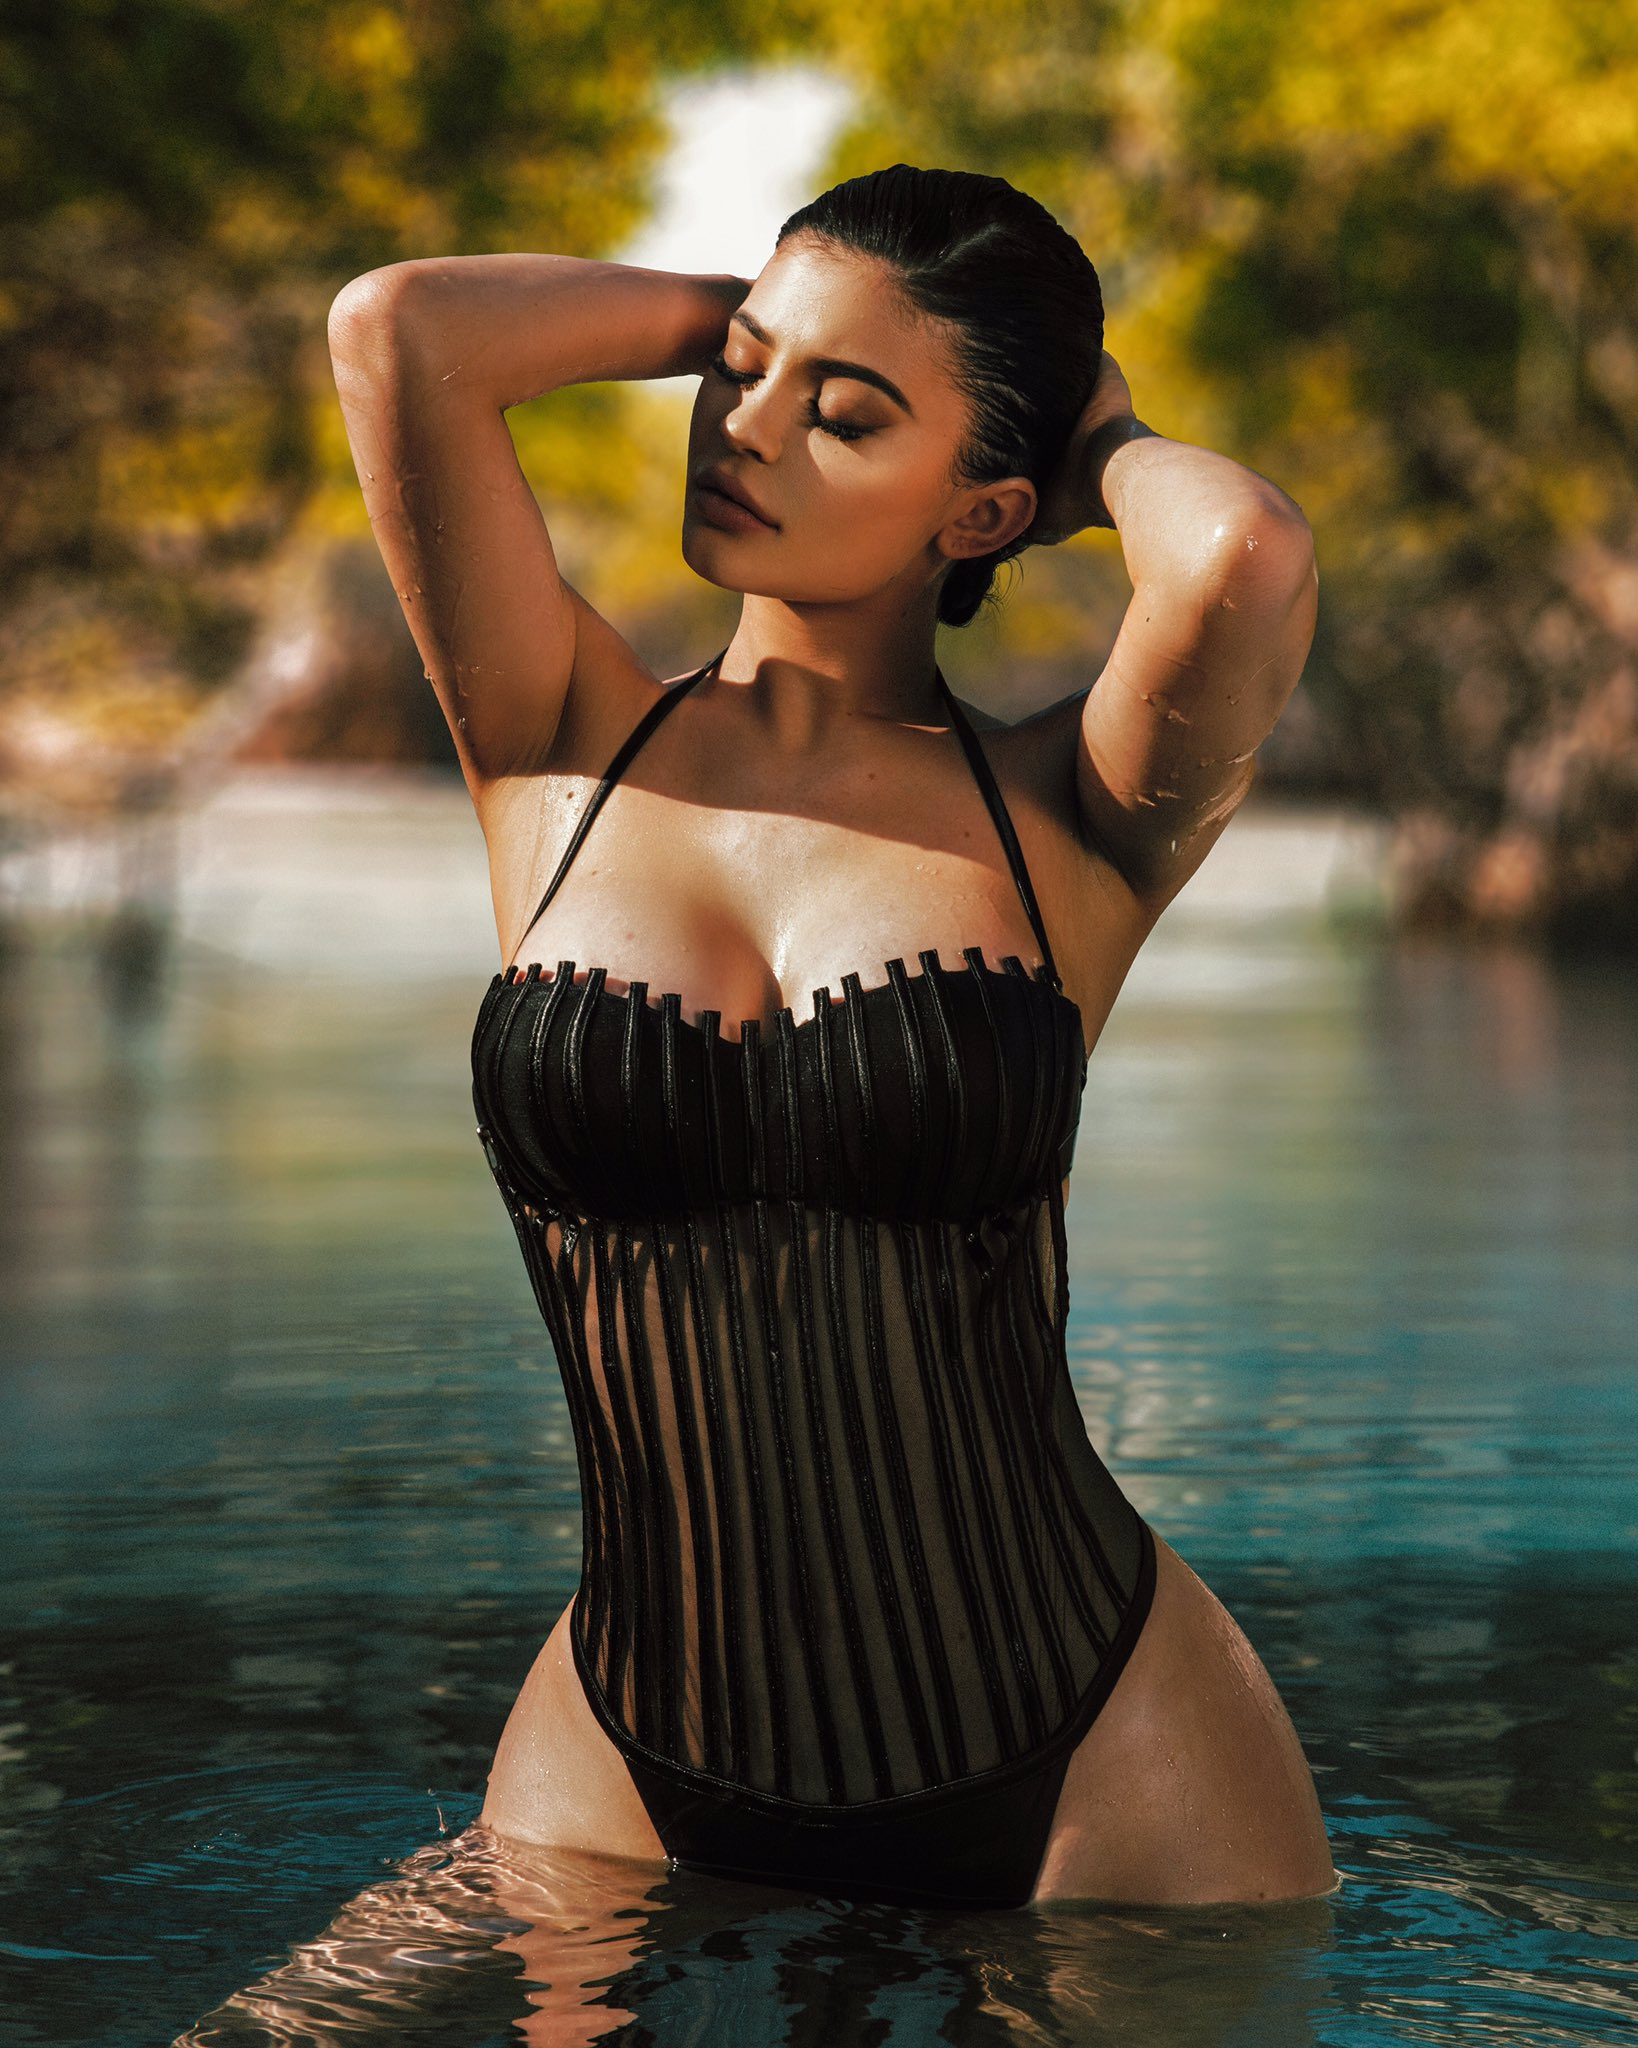 Kylie Jenner Bikini Pictures